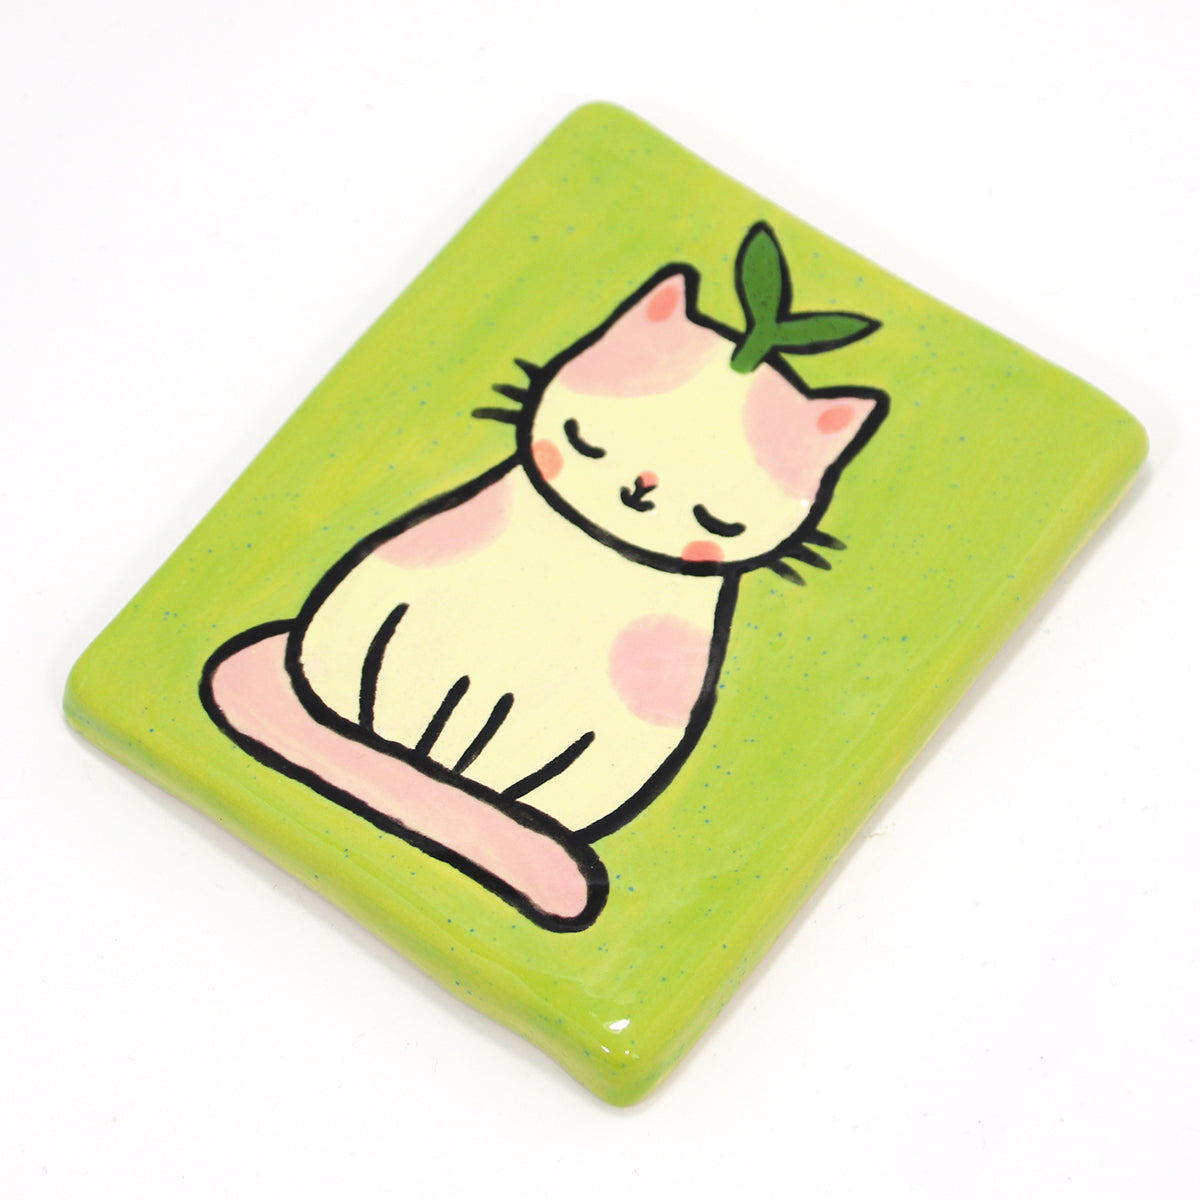 Ceramic Plant Kitty Wall-Hanging Tile #1402